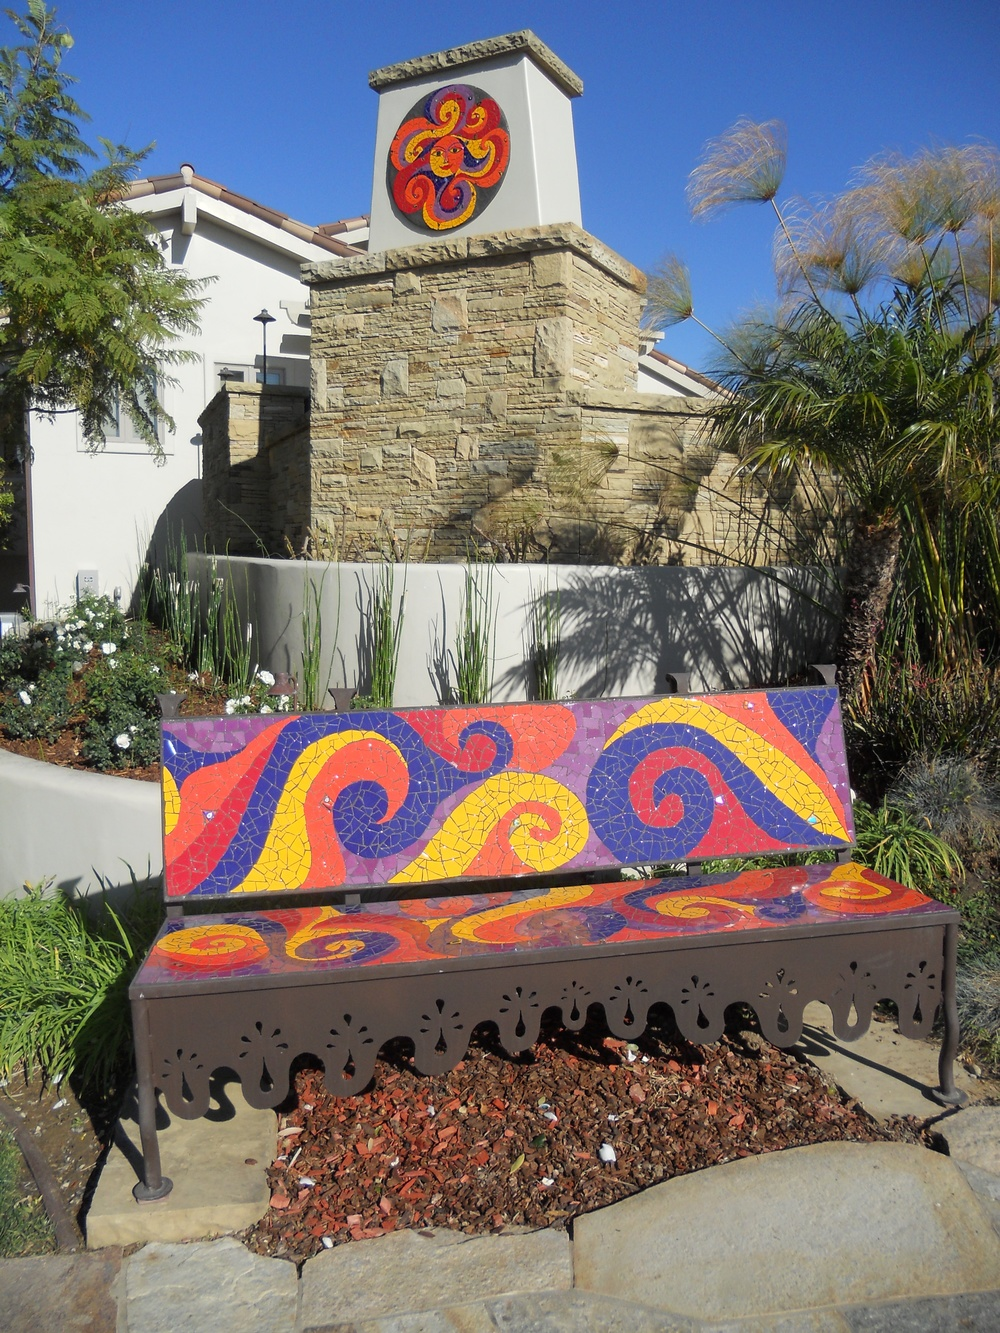 Ginni the Swirling Sun  and Swirling bench